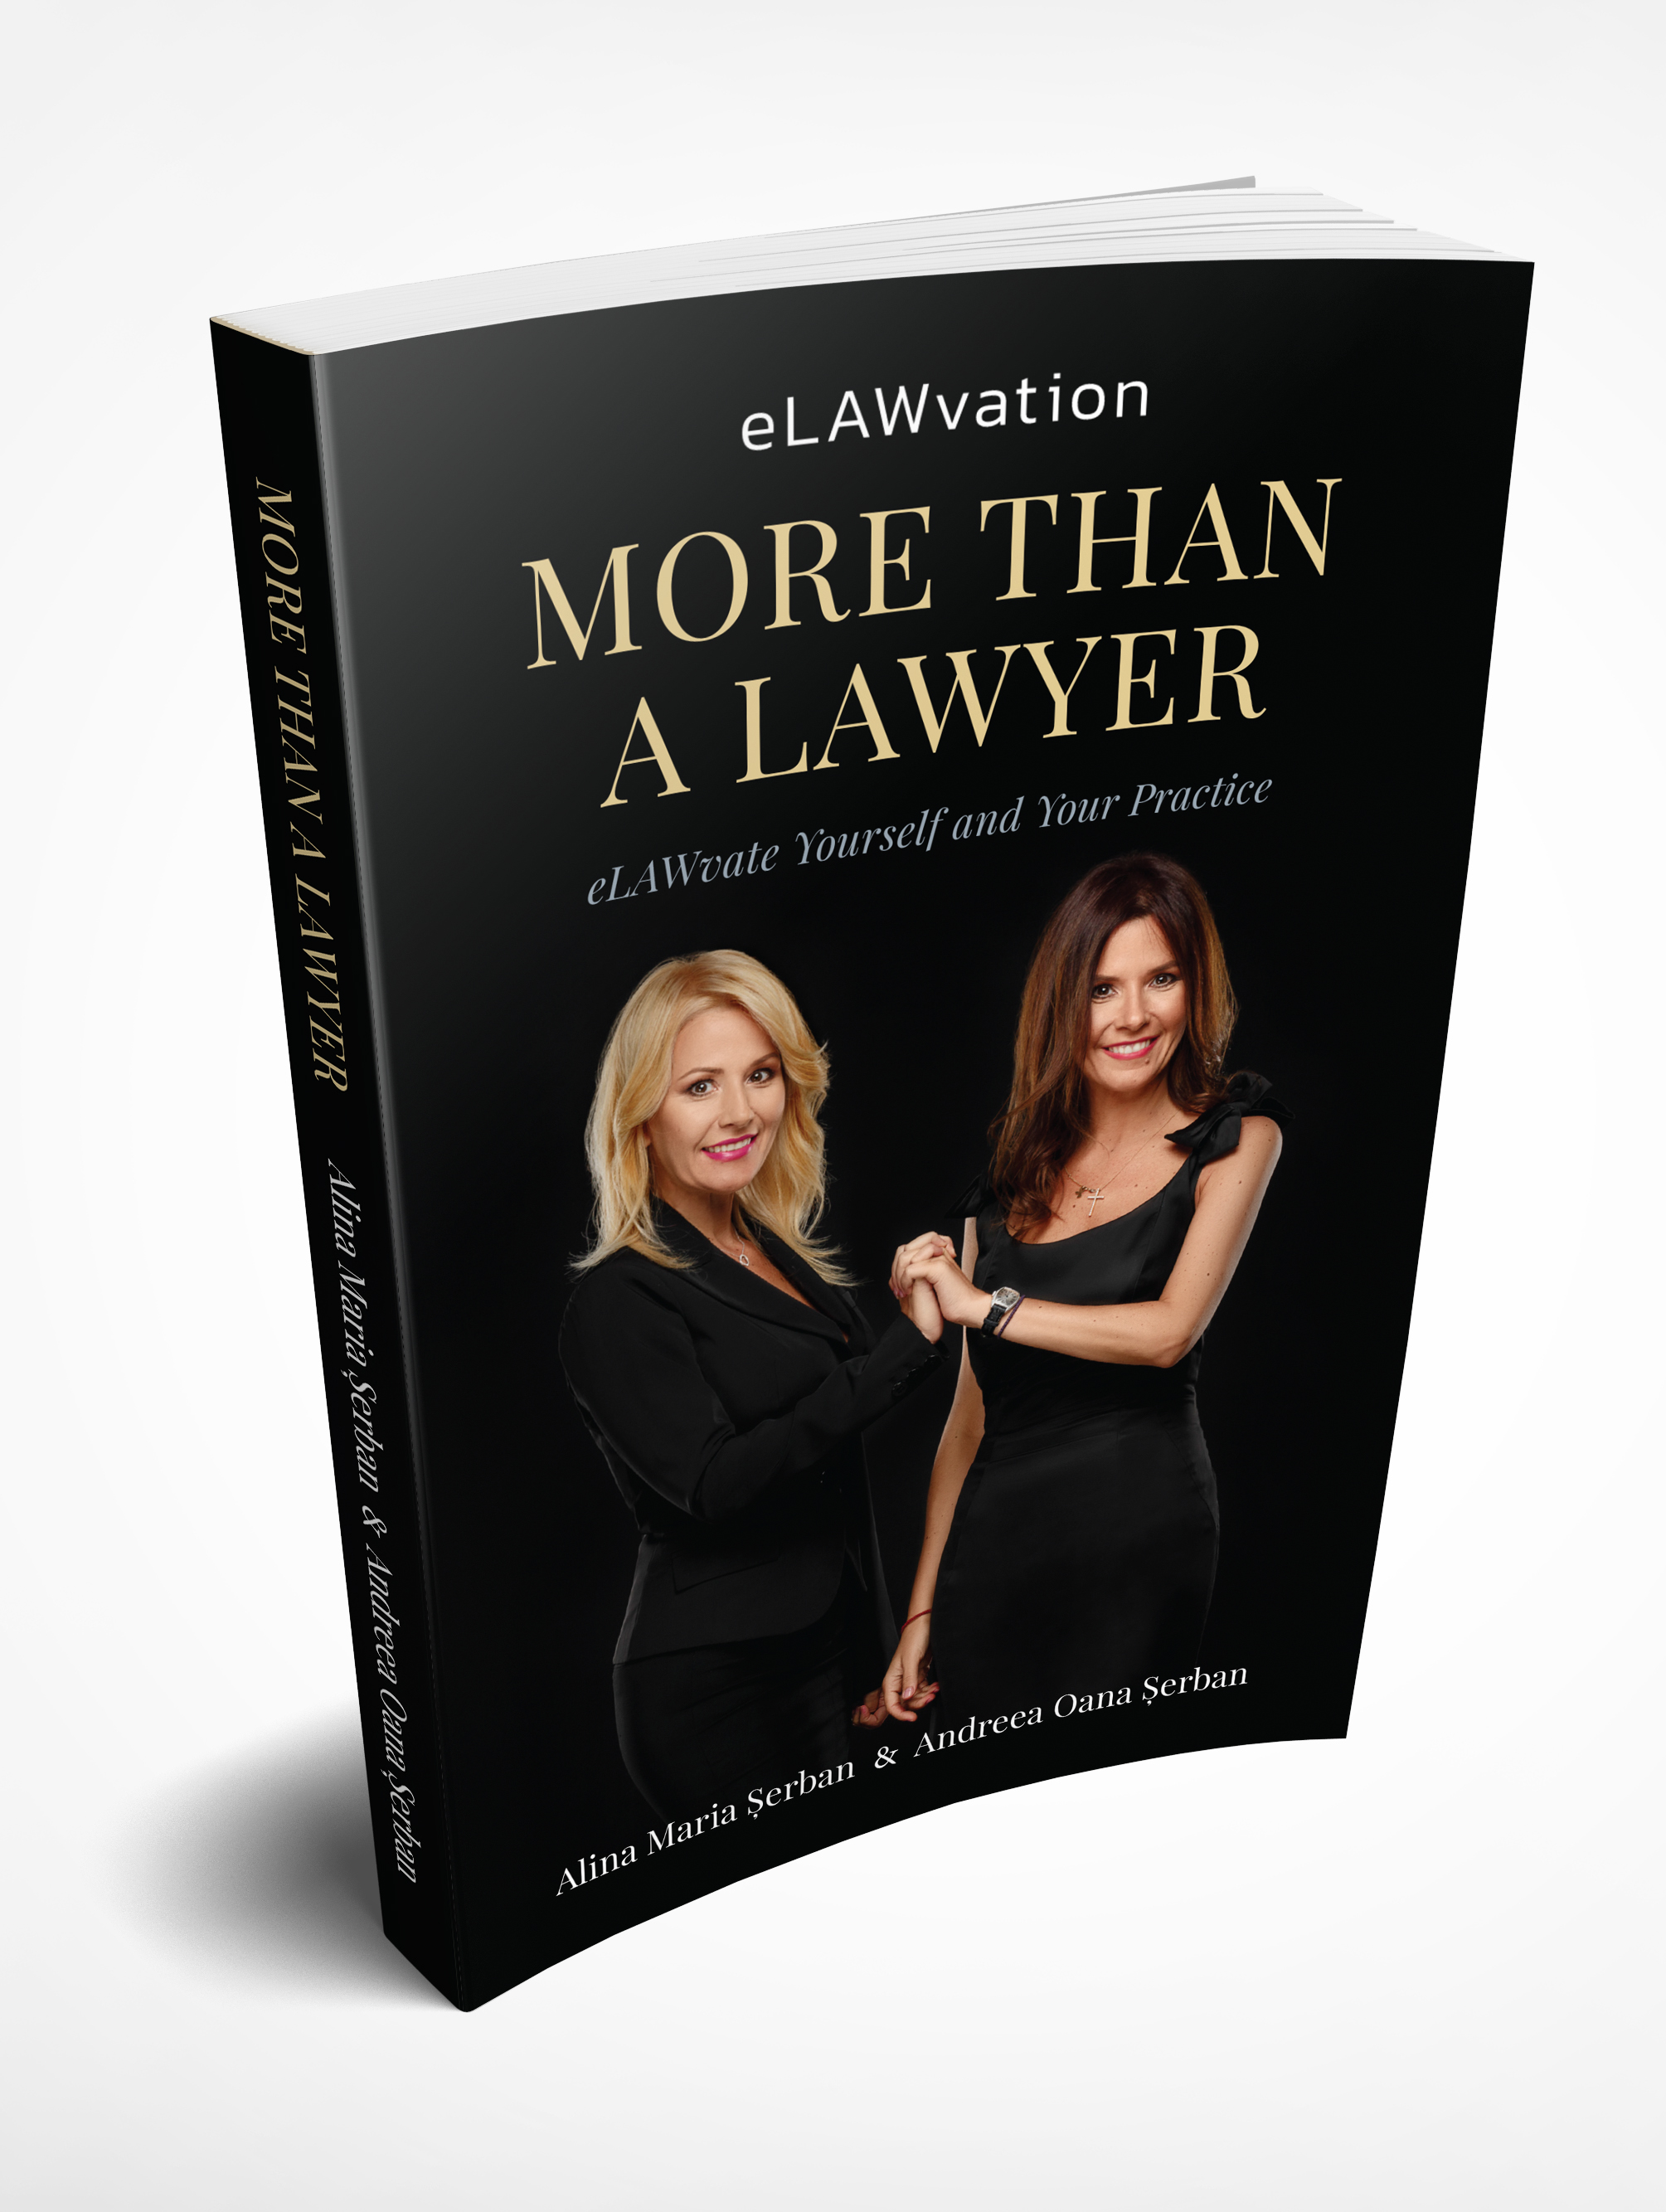 New Book Helps Lawyers and Professionals Working with People to Elevate Their Personal and Professional Lives